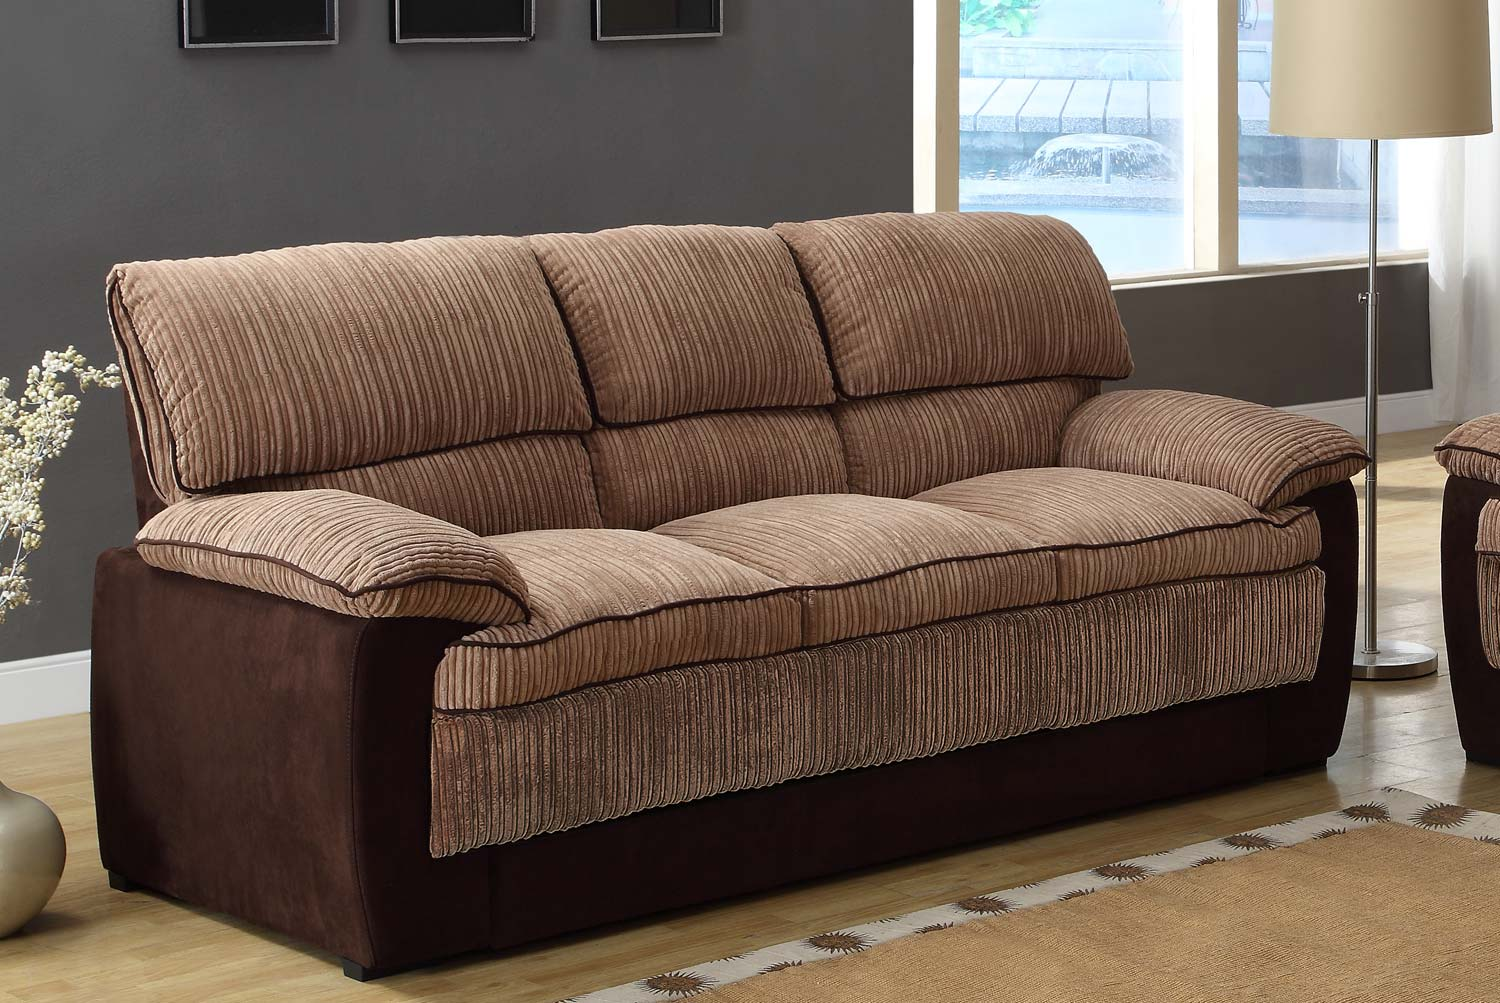 Corduroy Sofa Sectional Homelegance Mccollum Sofa Set - Brown - Corduroy And